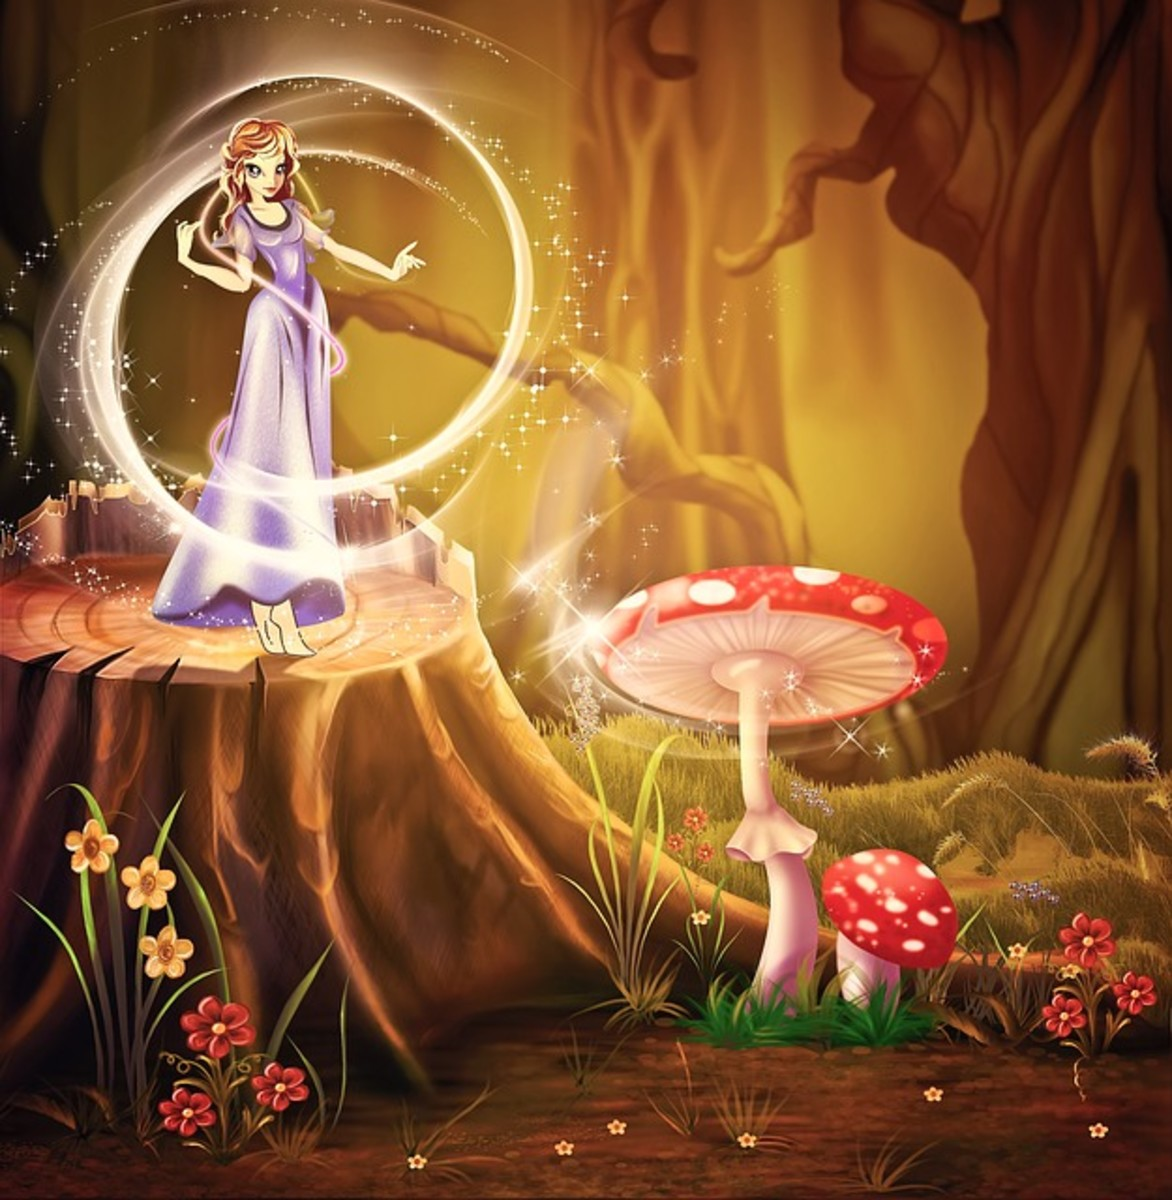 magic-for-midsummer-simple-spells-potions-and-other-magical-inspirations